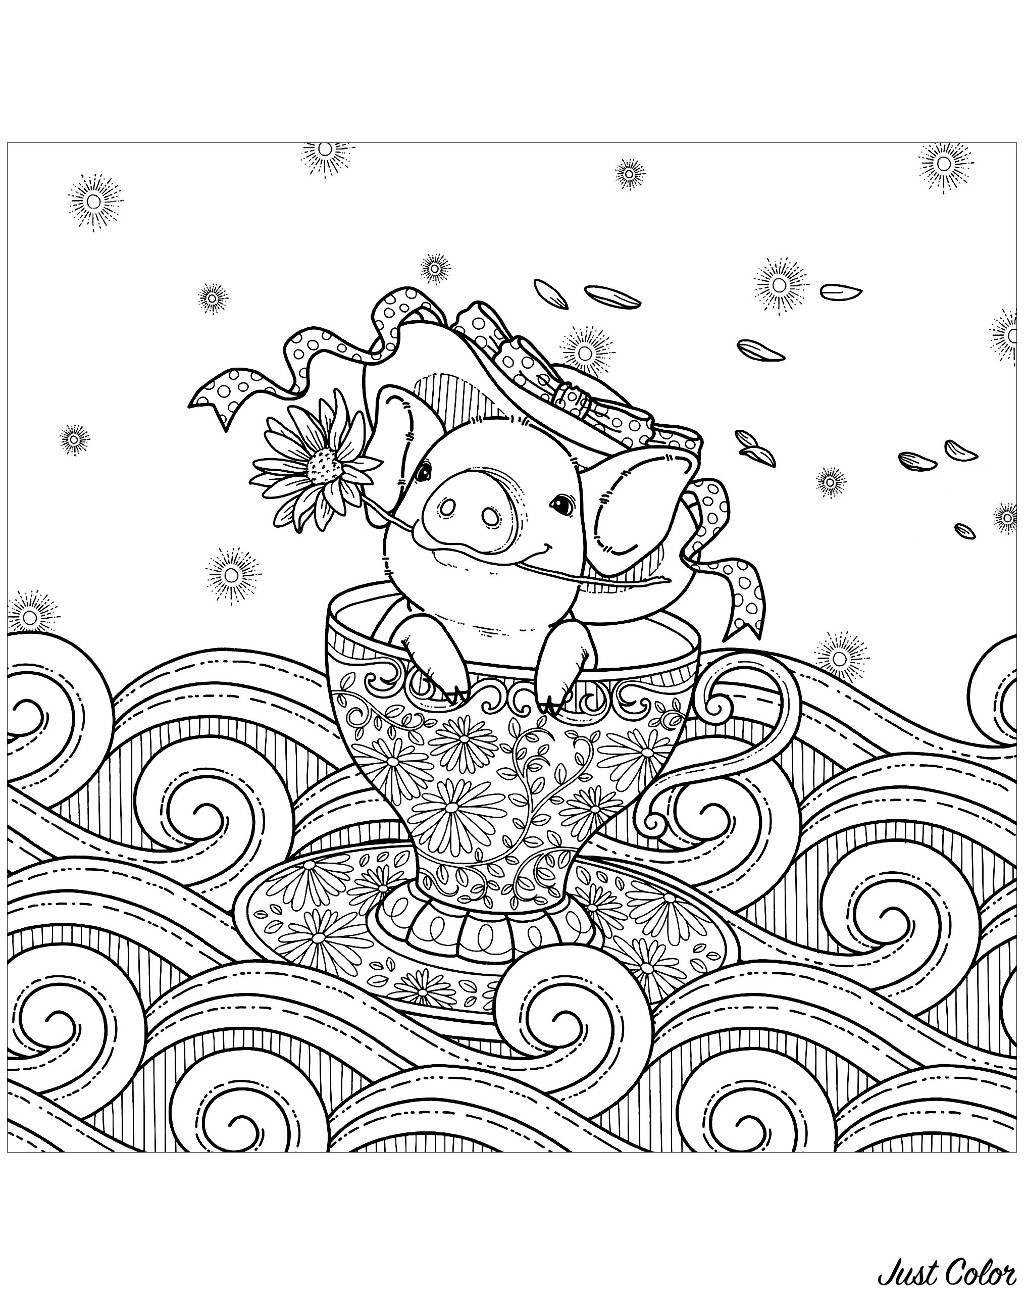 coloring page of pig pig coloring pages for adults top free printable coloring page pig of